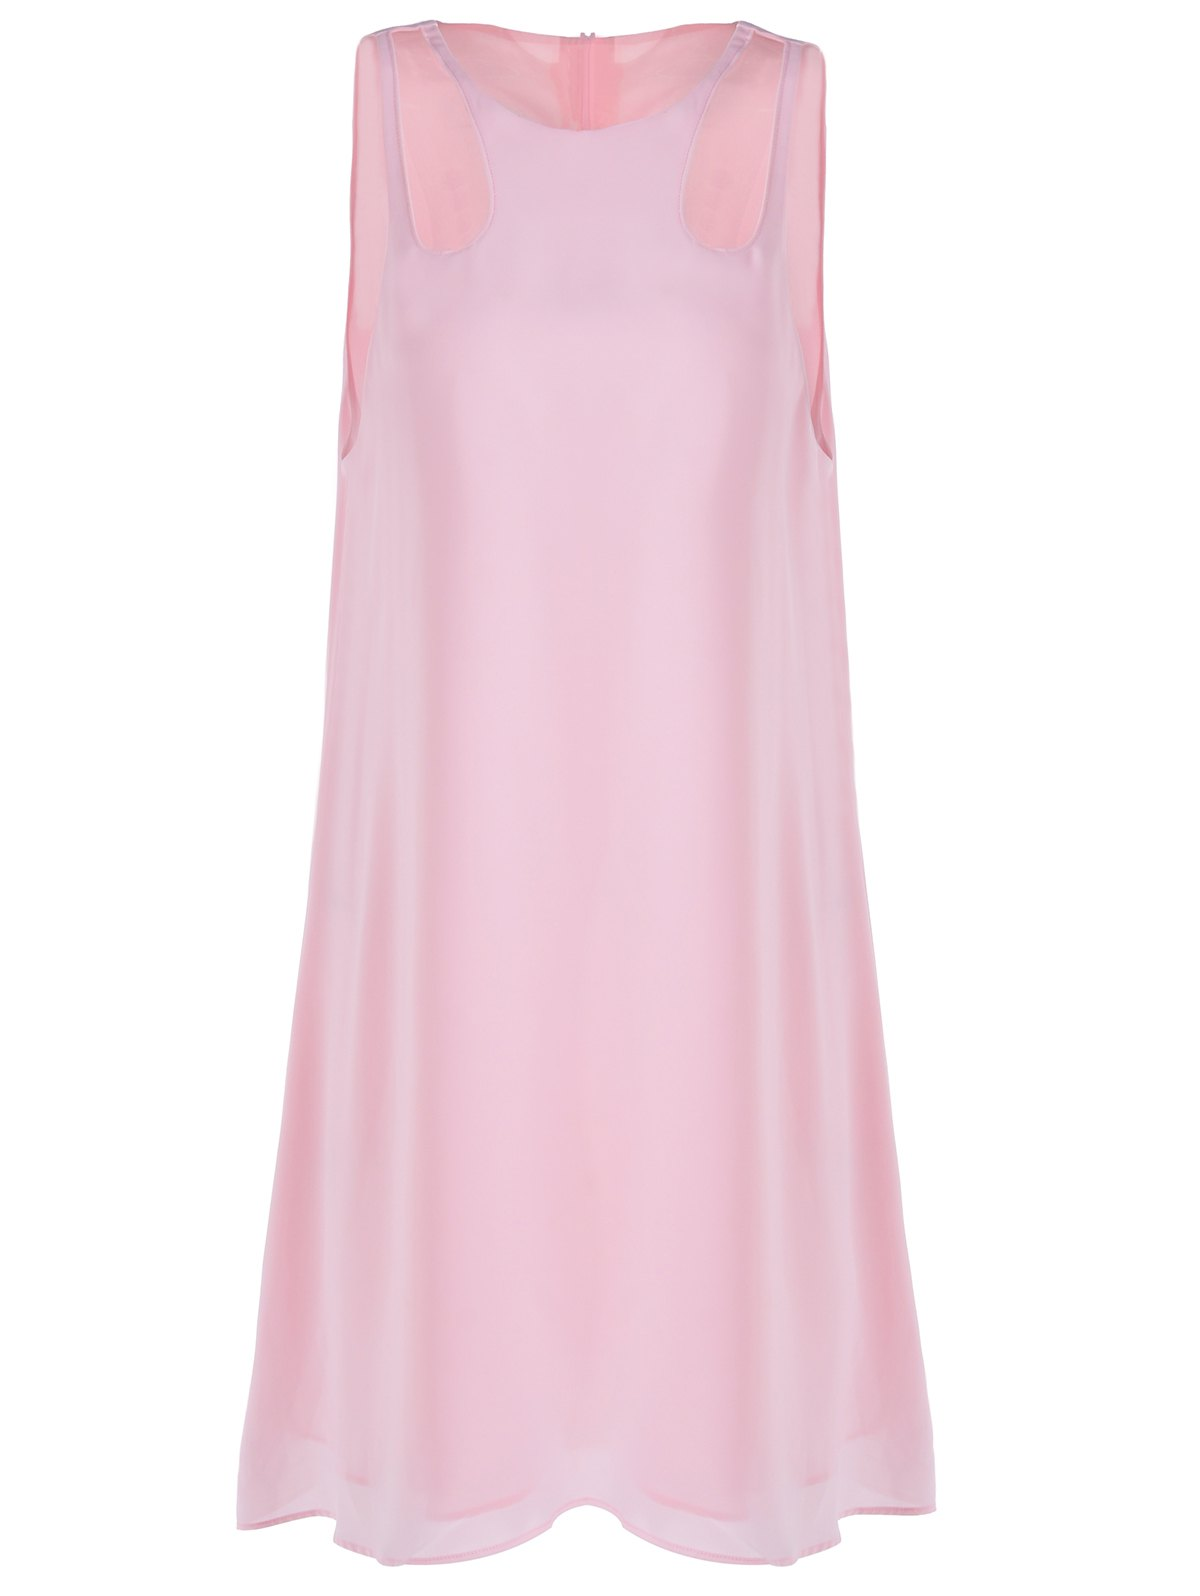 Sweet Cut-Out Round Collar Sleeveless Dress For Woman